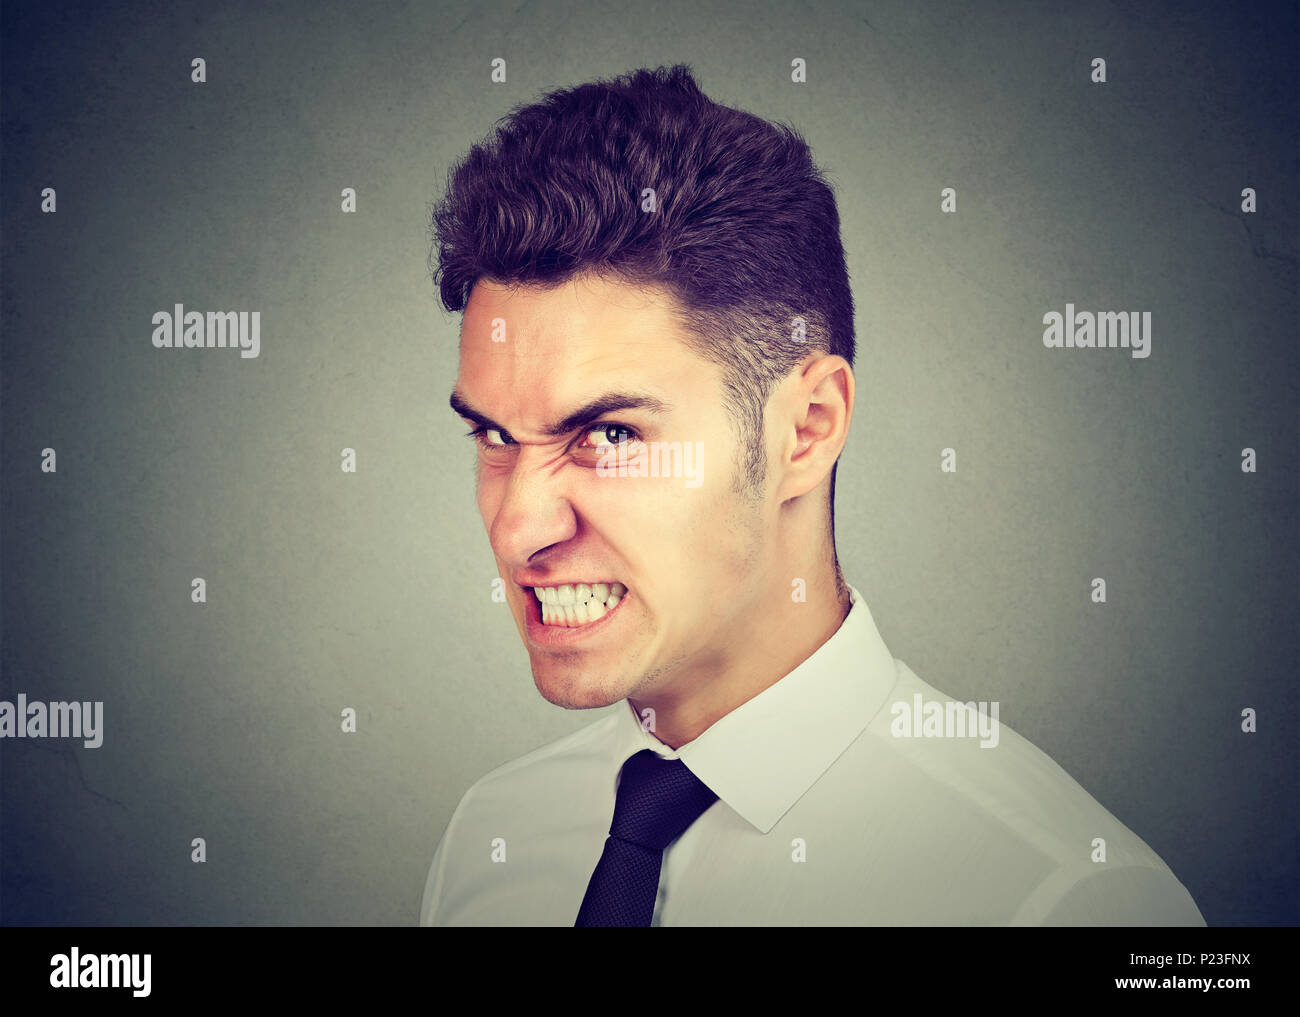 Hostile young business man looking at camera with angry face expression - Stock Image